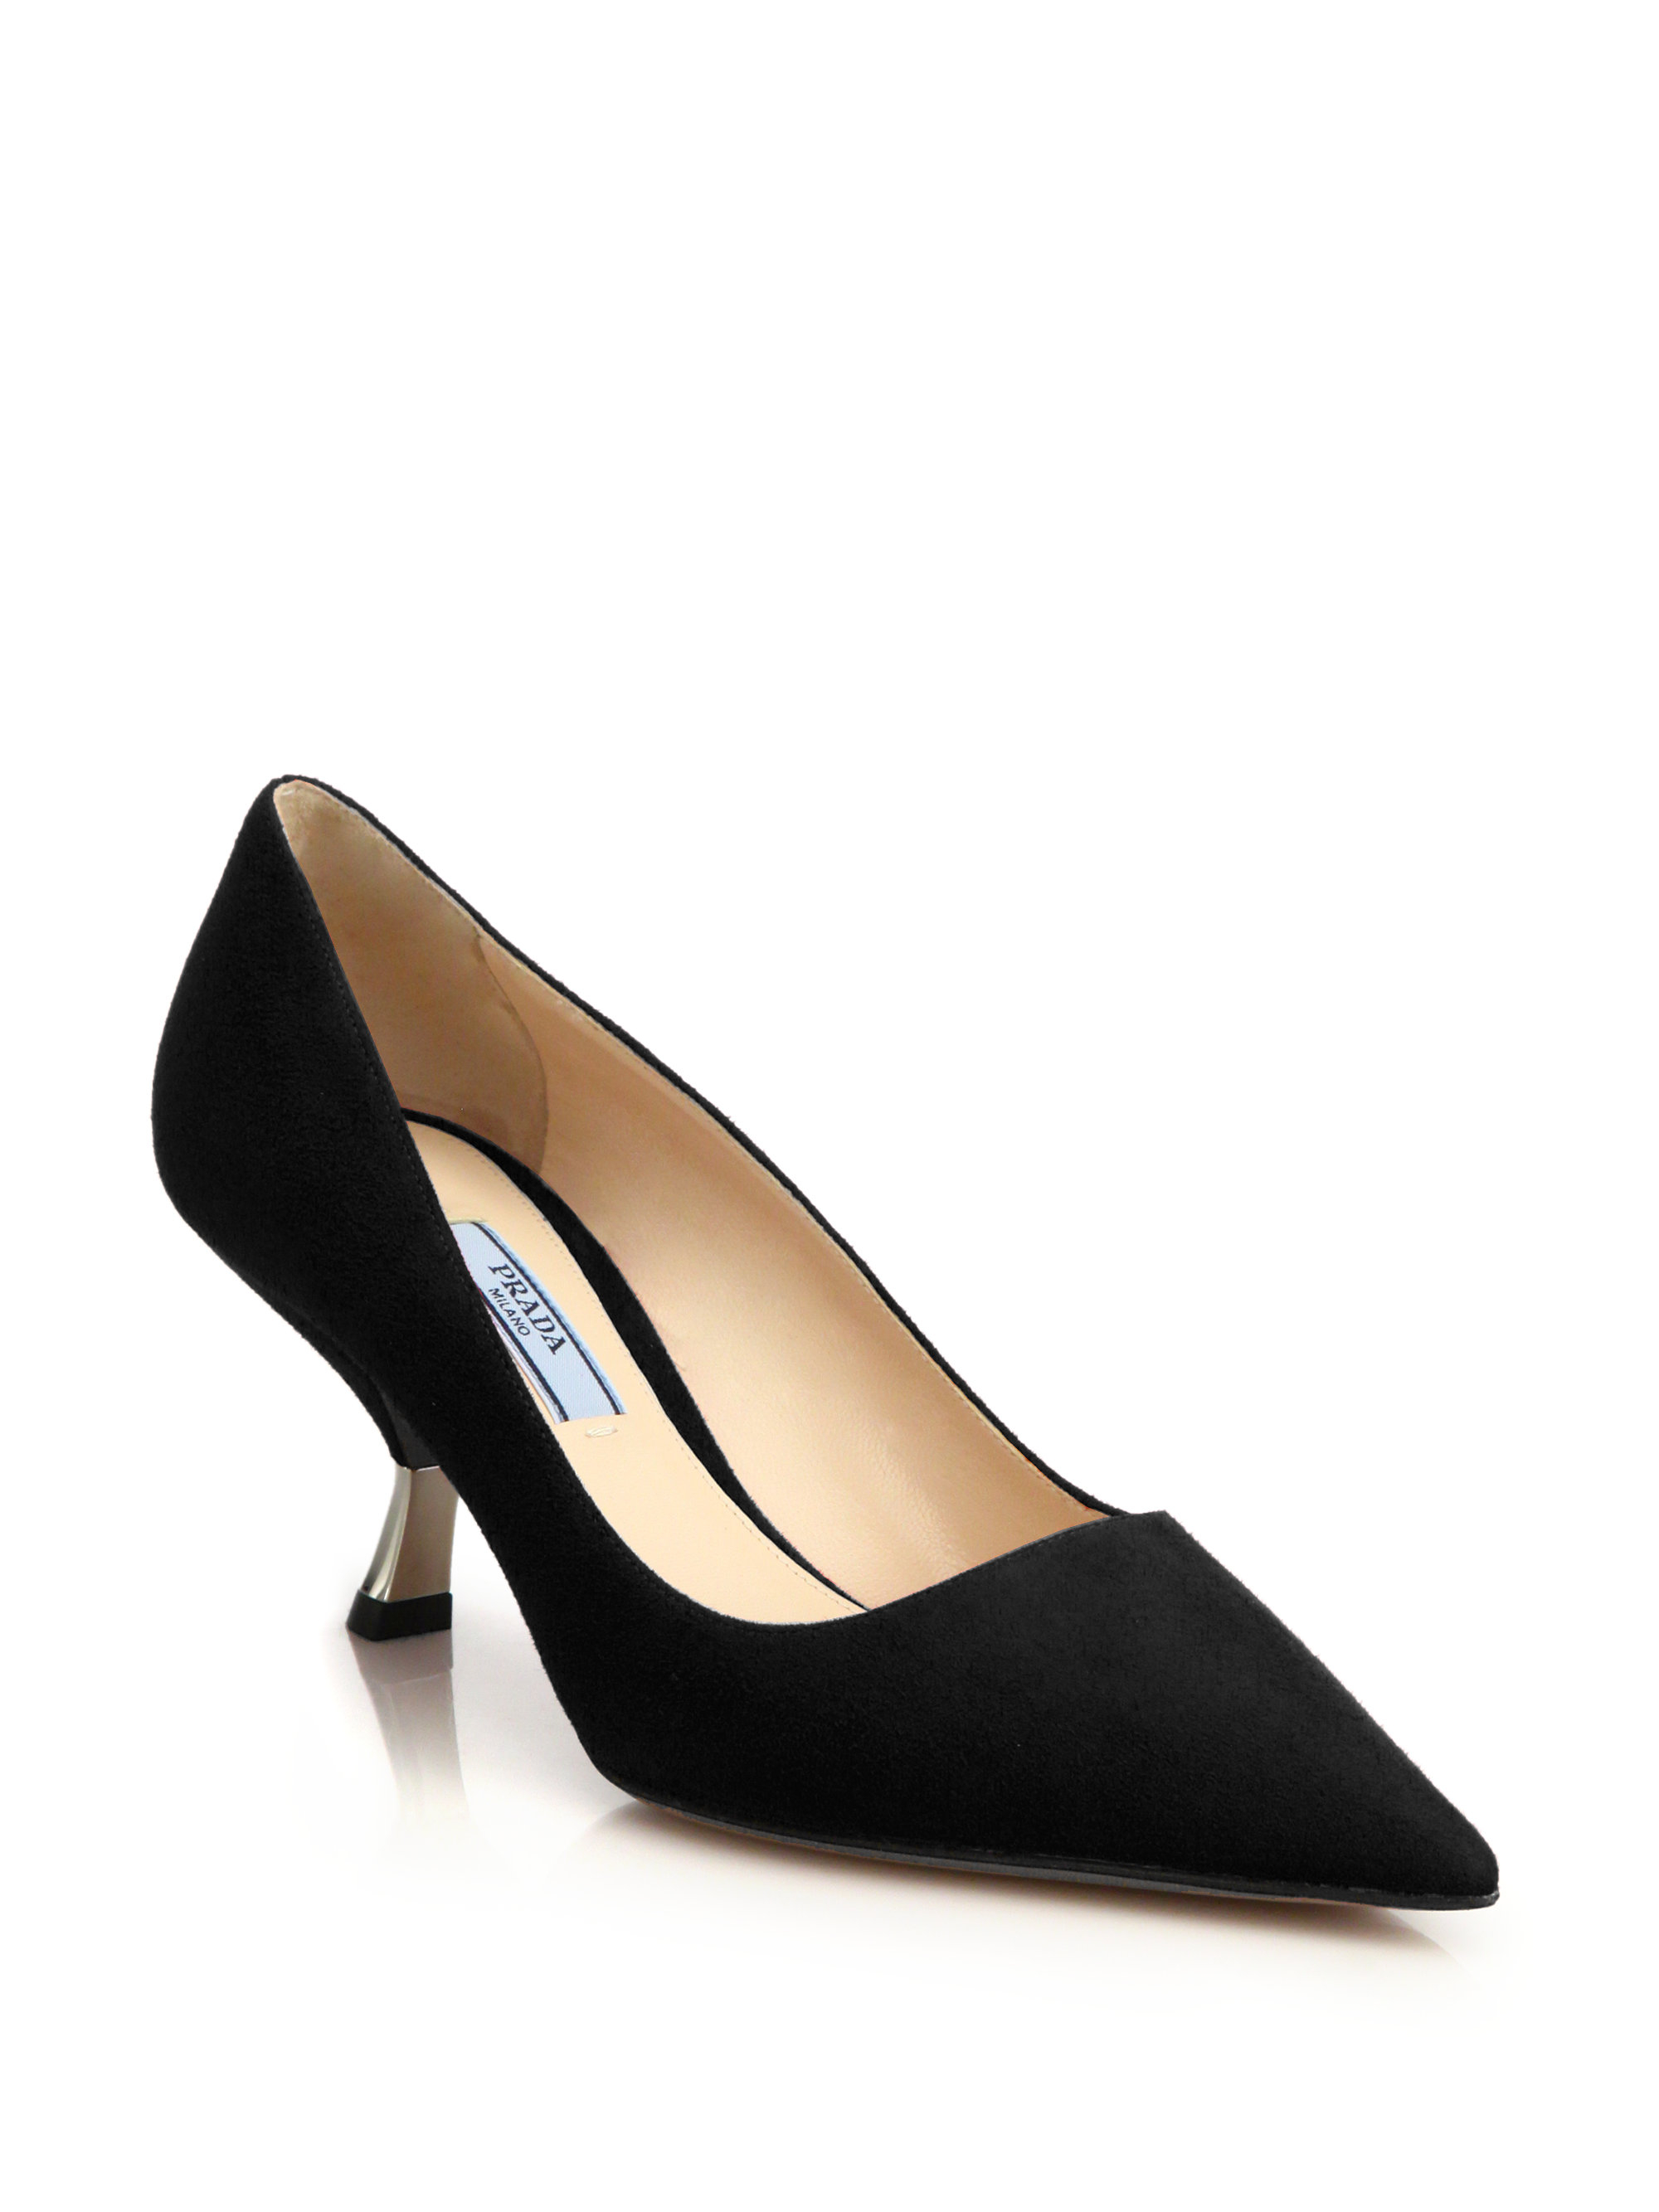 Buy Heels prada pictures trends